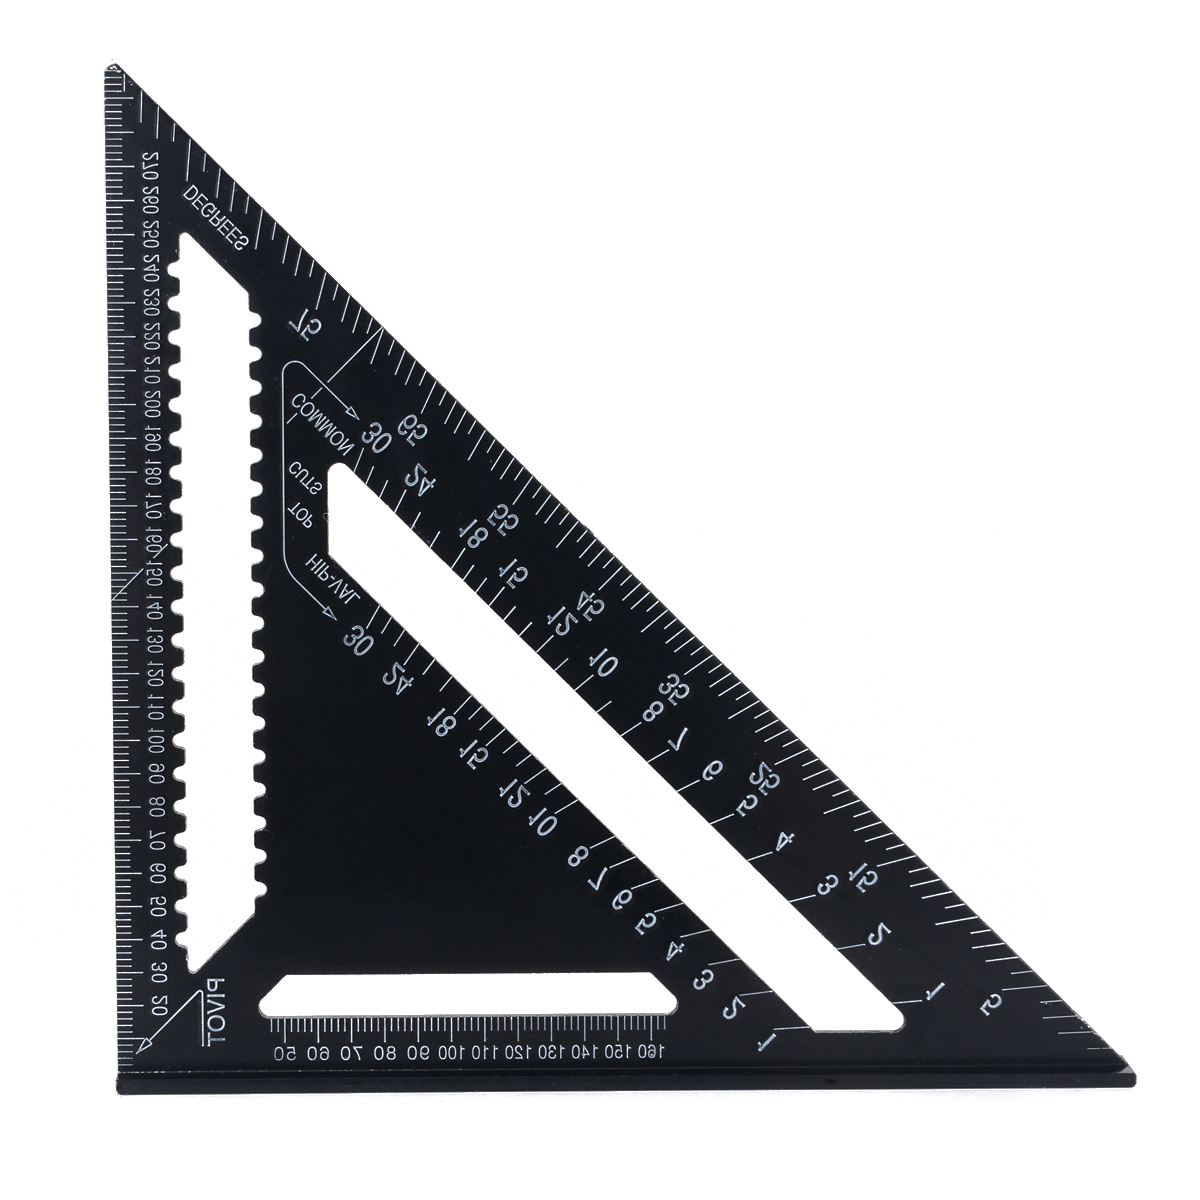 Aluminium Roofing Tri-square Ruler 12 inch Rafter Angle Frame Black For Carpenter Woodworking Measuring Tools the secrets of droon volume 1 books 1 3 page 8